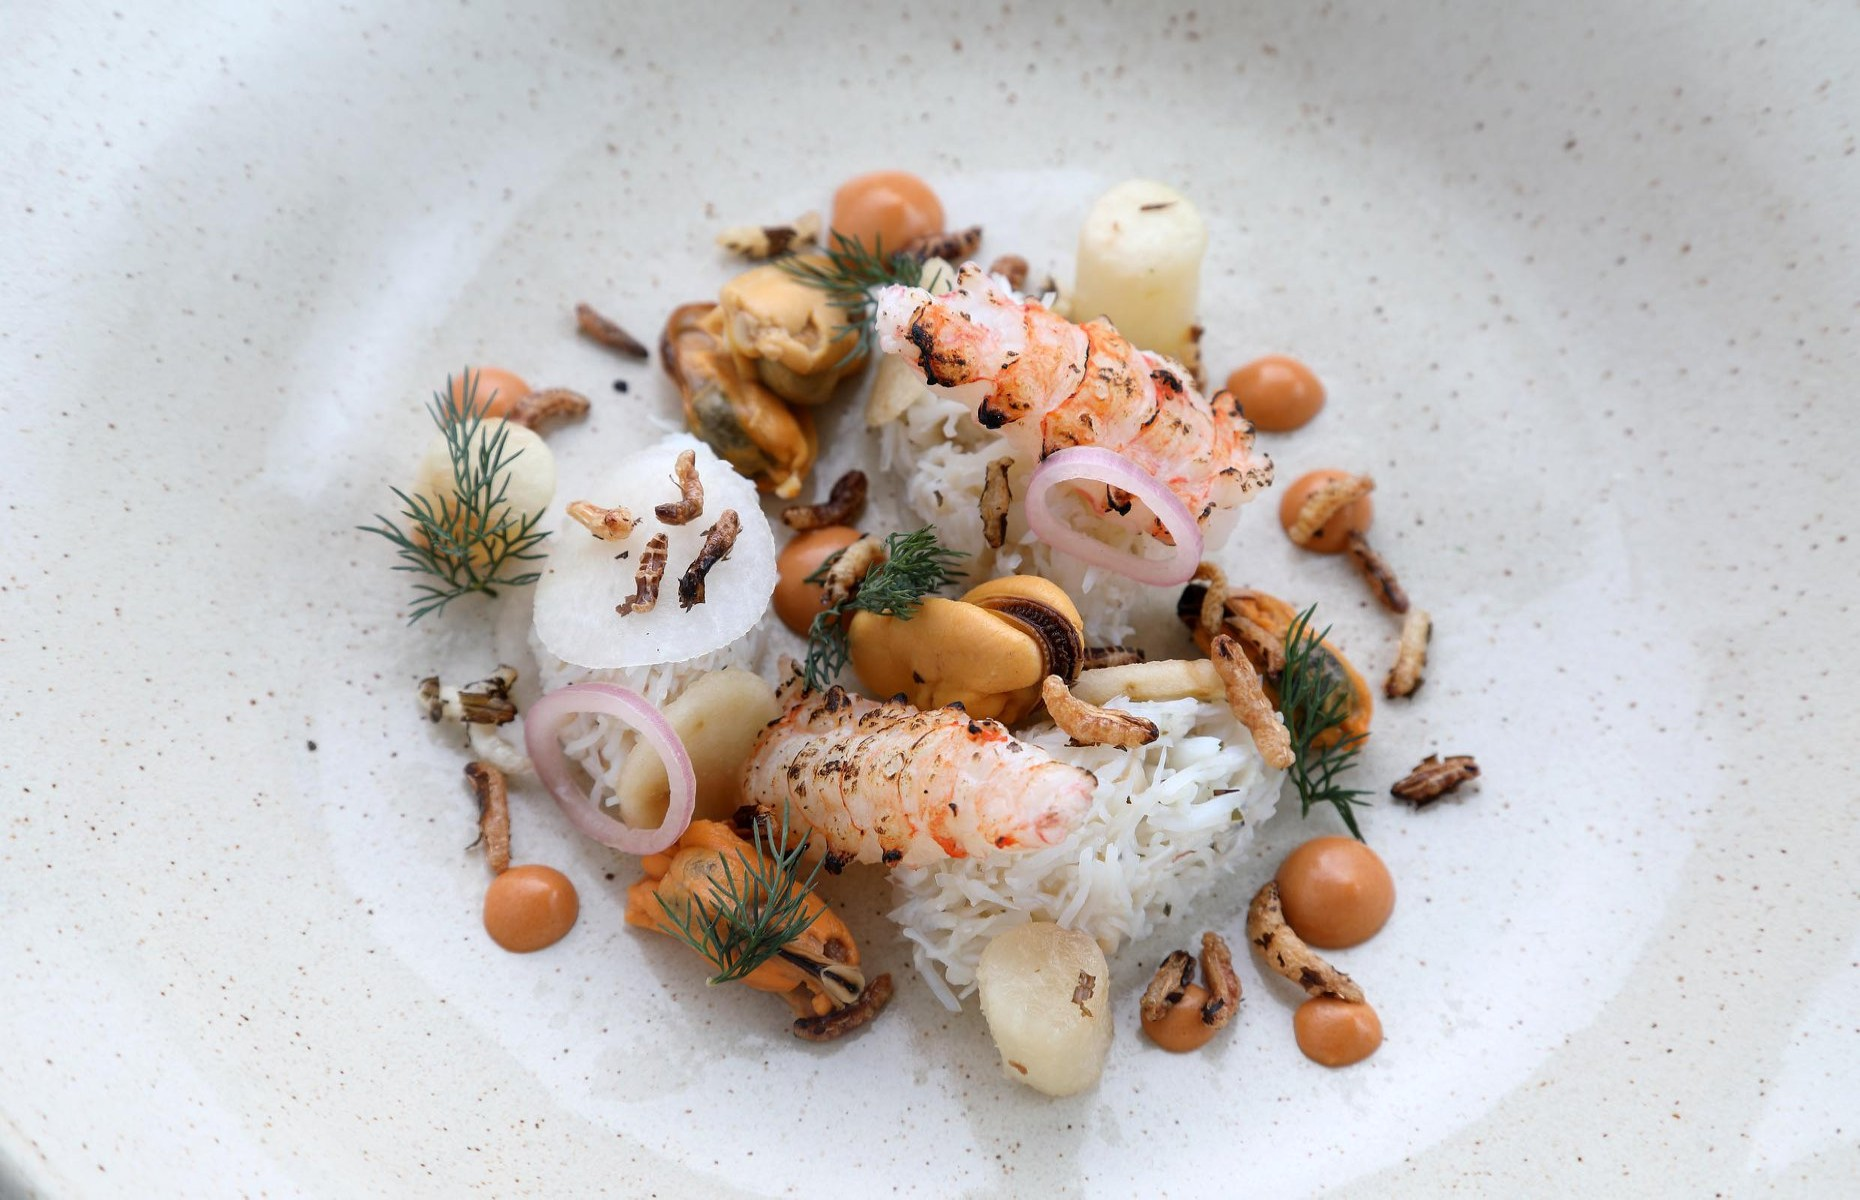 A plate packed with seafood at The Three Chimneys restaurant (Image: The Three Chimneys/Facebook)